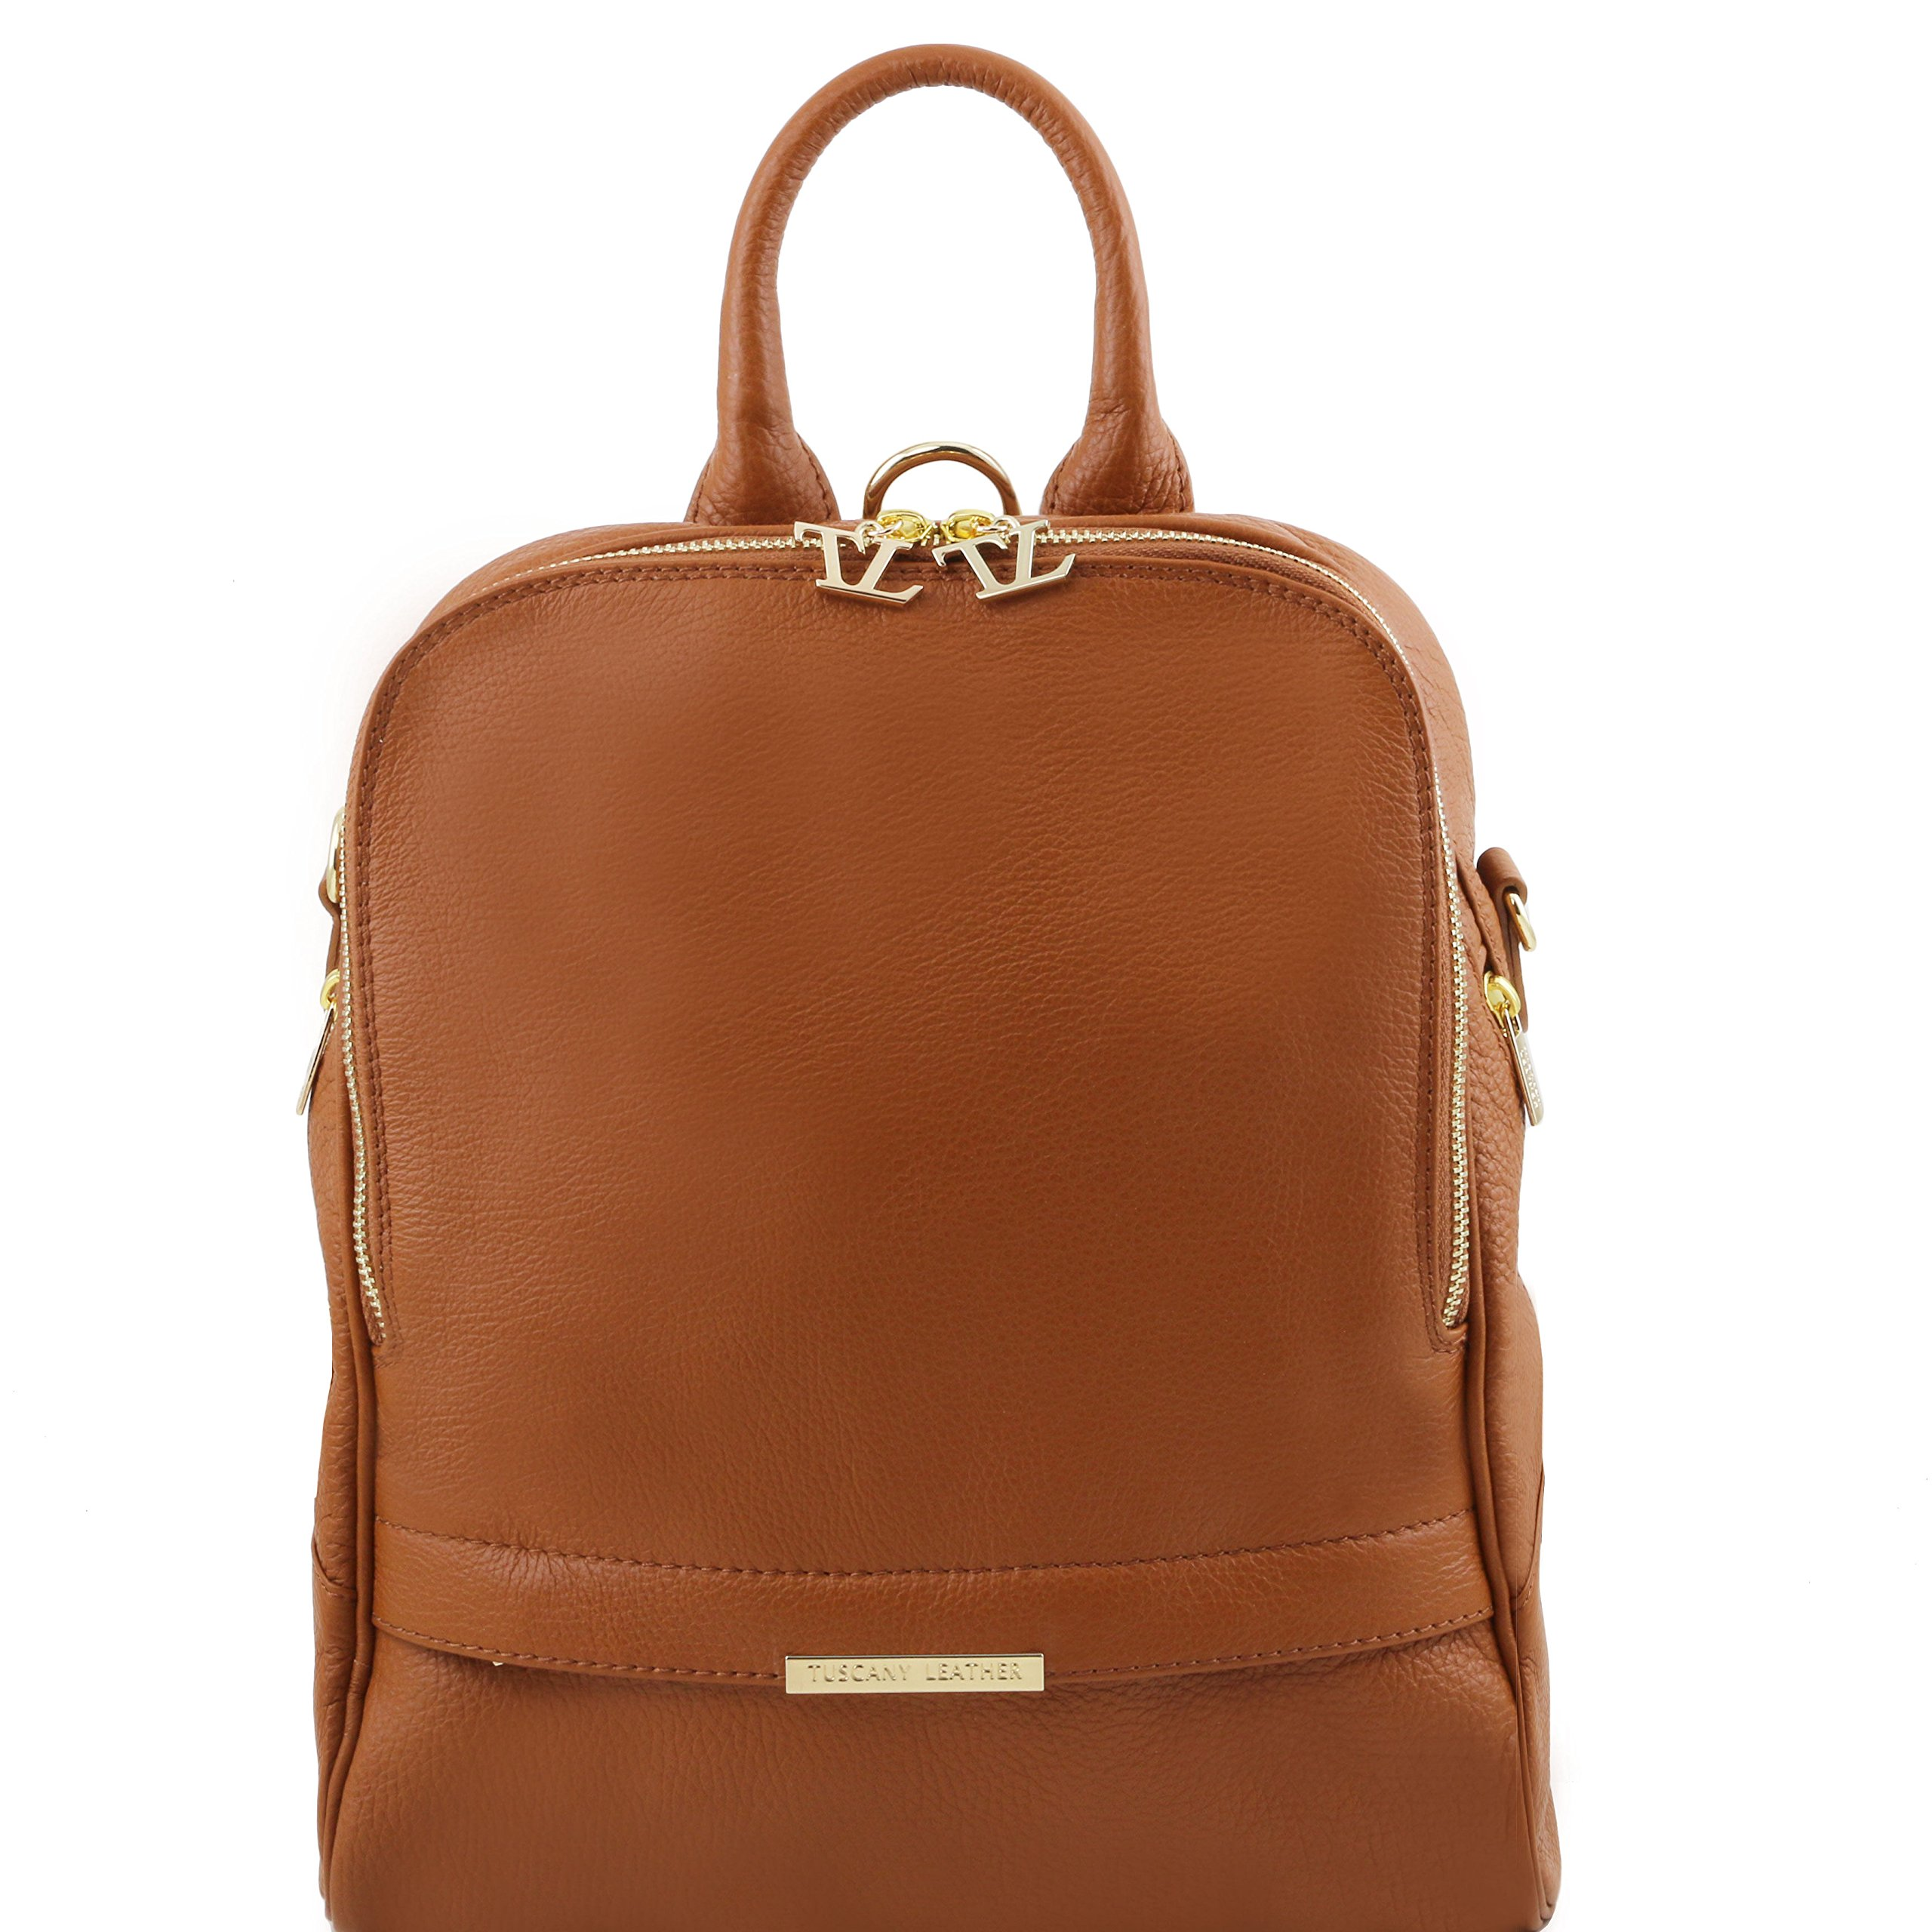 Tuscany Leather TLBag Soft leather backpack for women Cognac